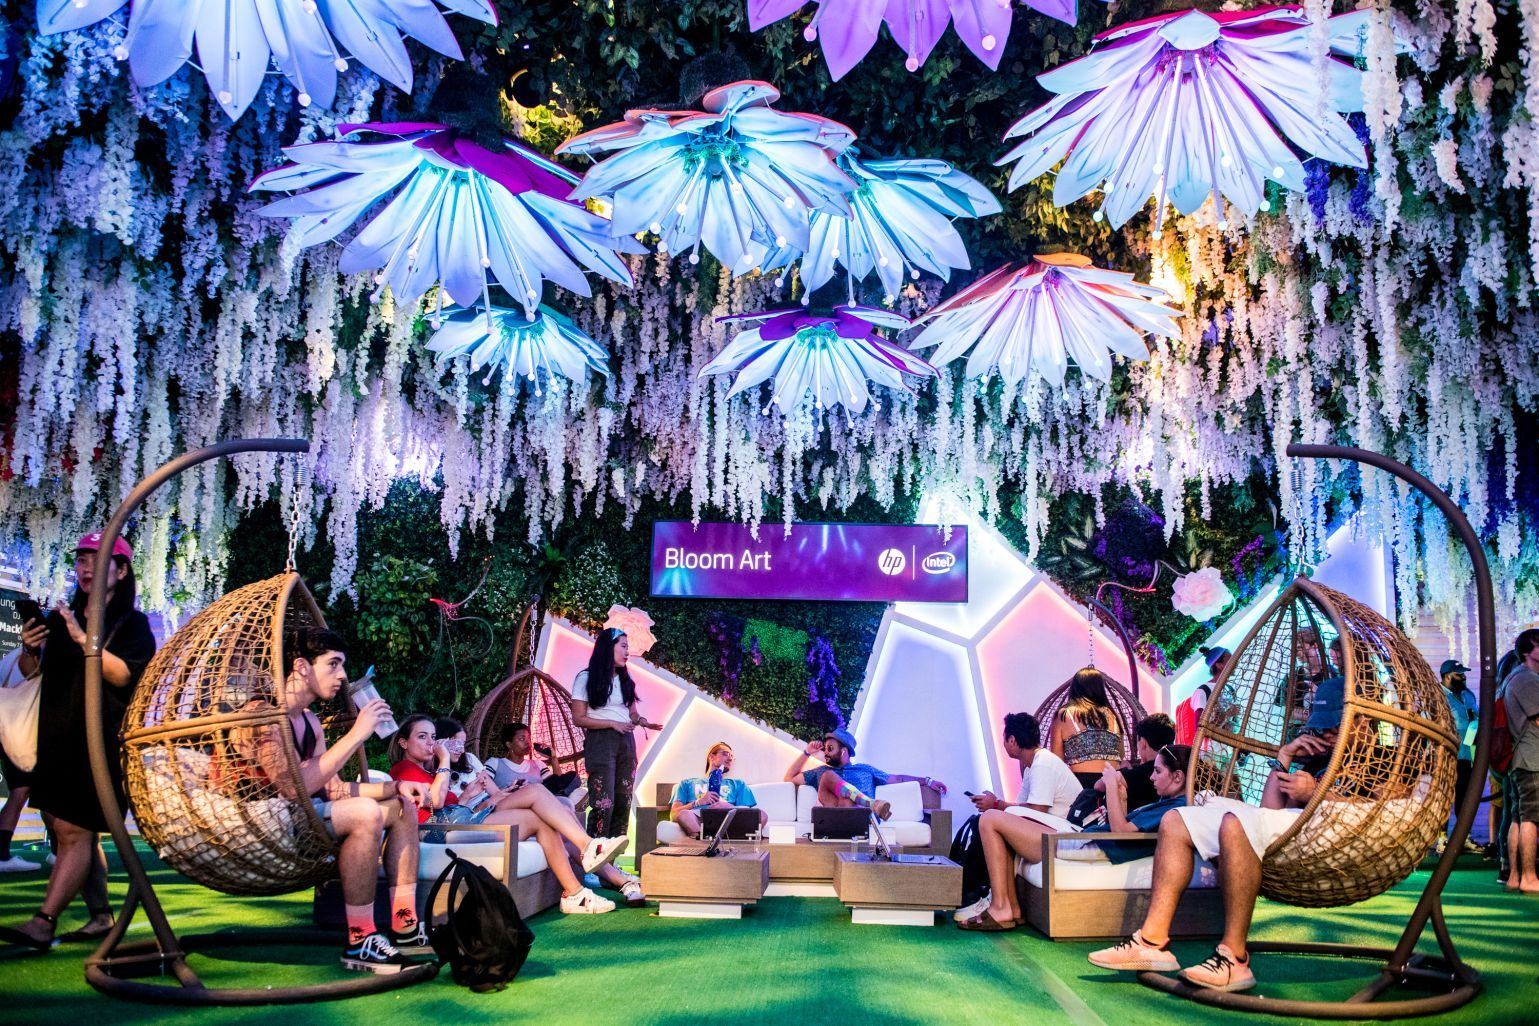 Panorama Music Festival Activations Engage Fans With Digital Art, Dive Bars and Dunk Contests